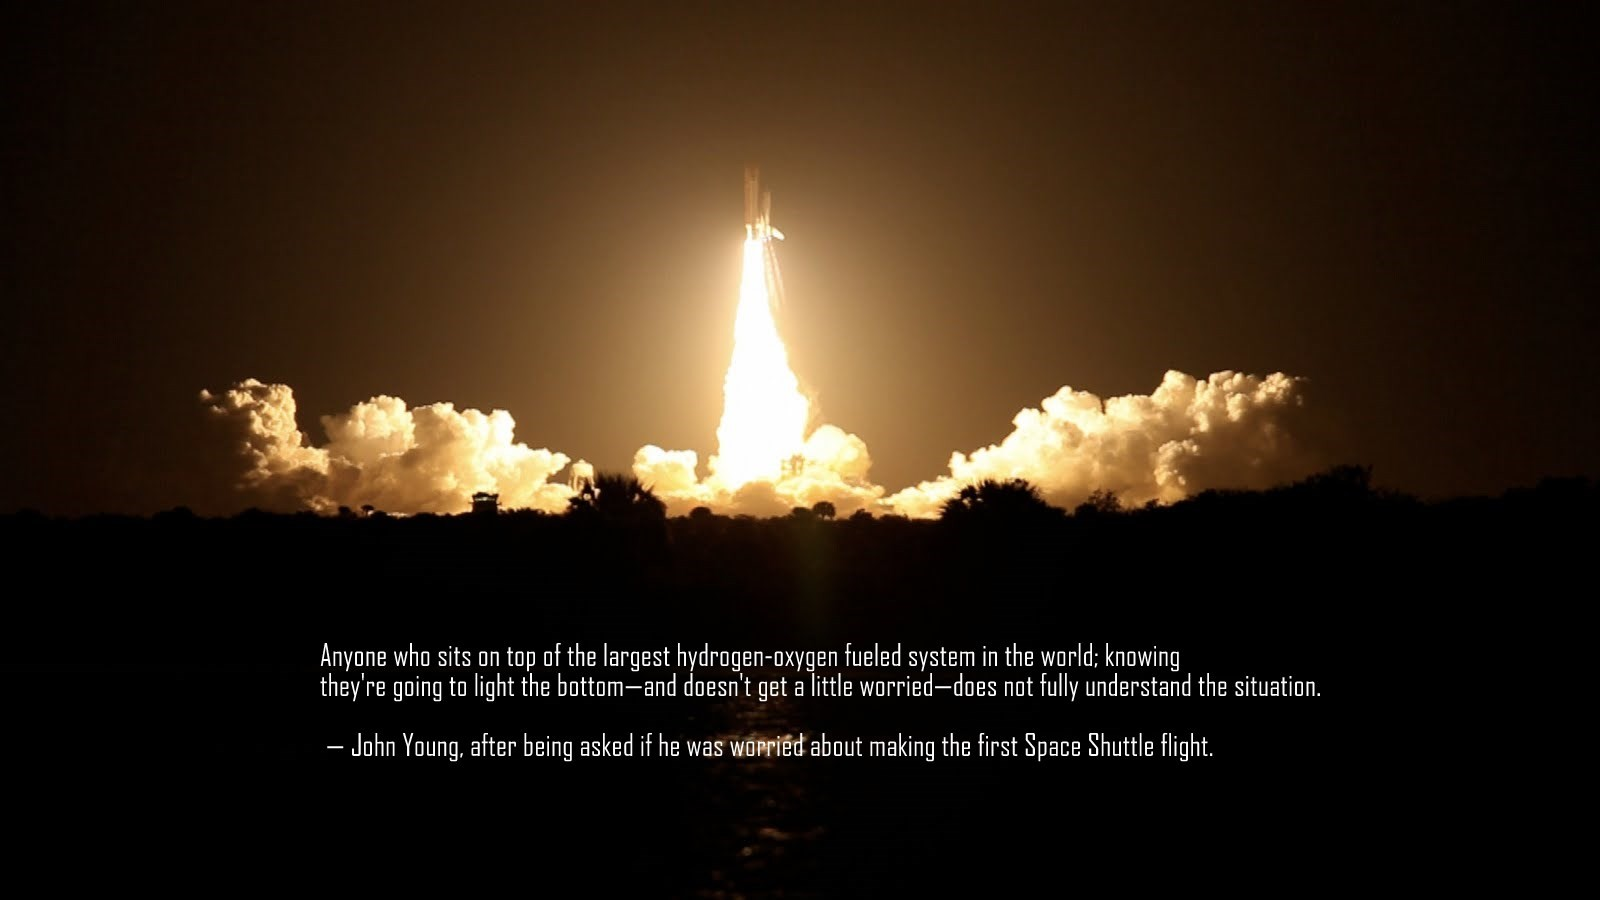 Launch quote #1